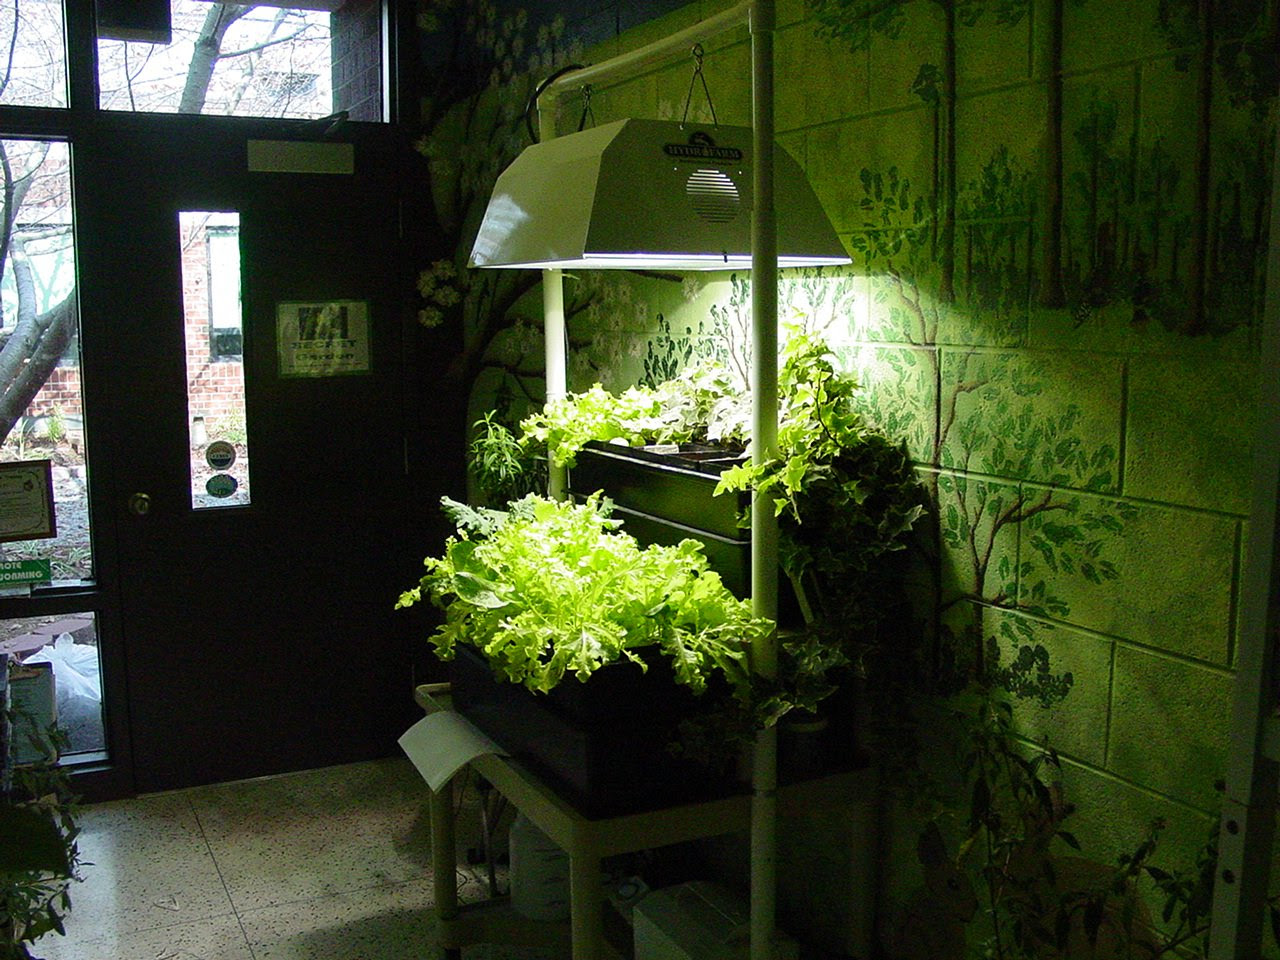 Hydroponics for Beginners  Hydroponics Blog  Hydroponics Articles  Hydroponics Online